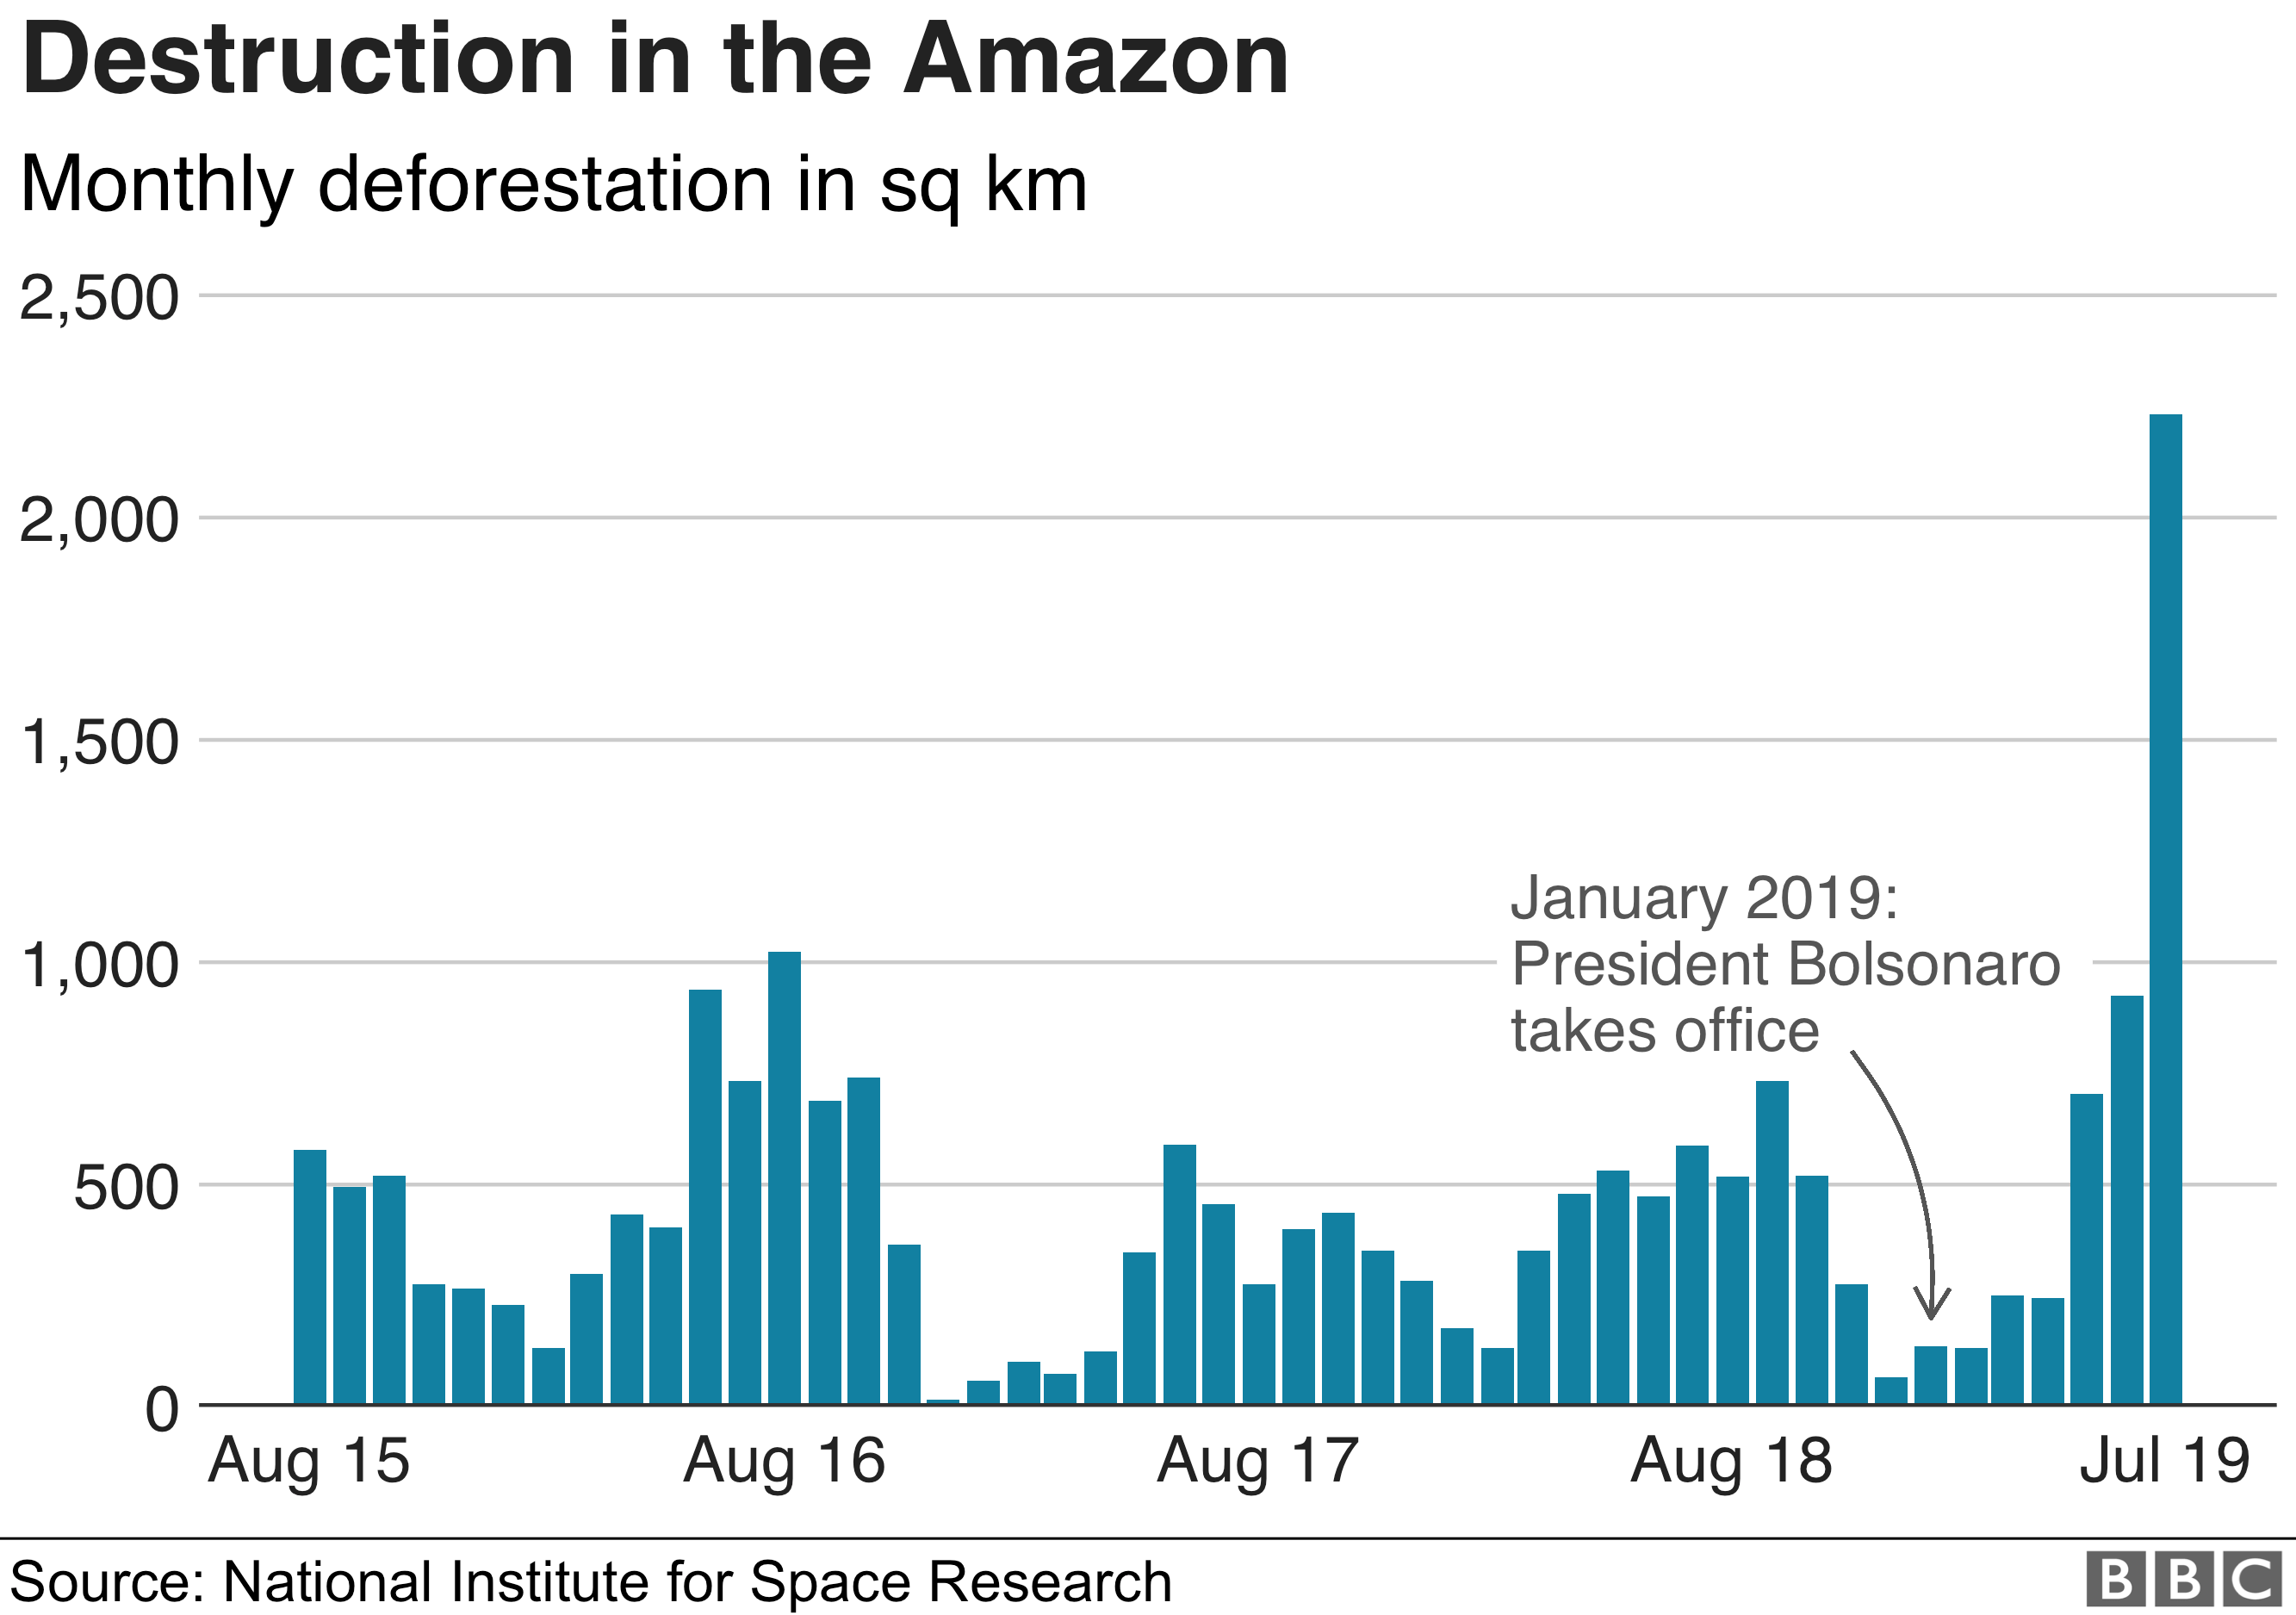 Chart showing monthly deforestation in the Amazon region